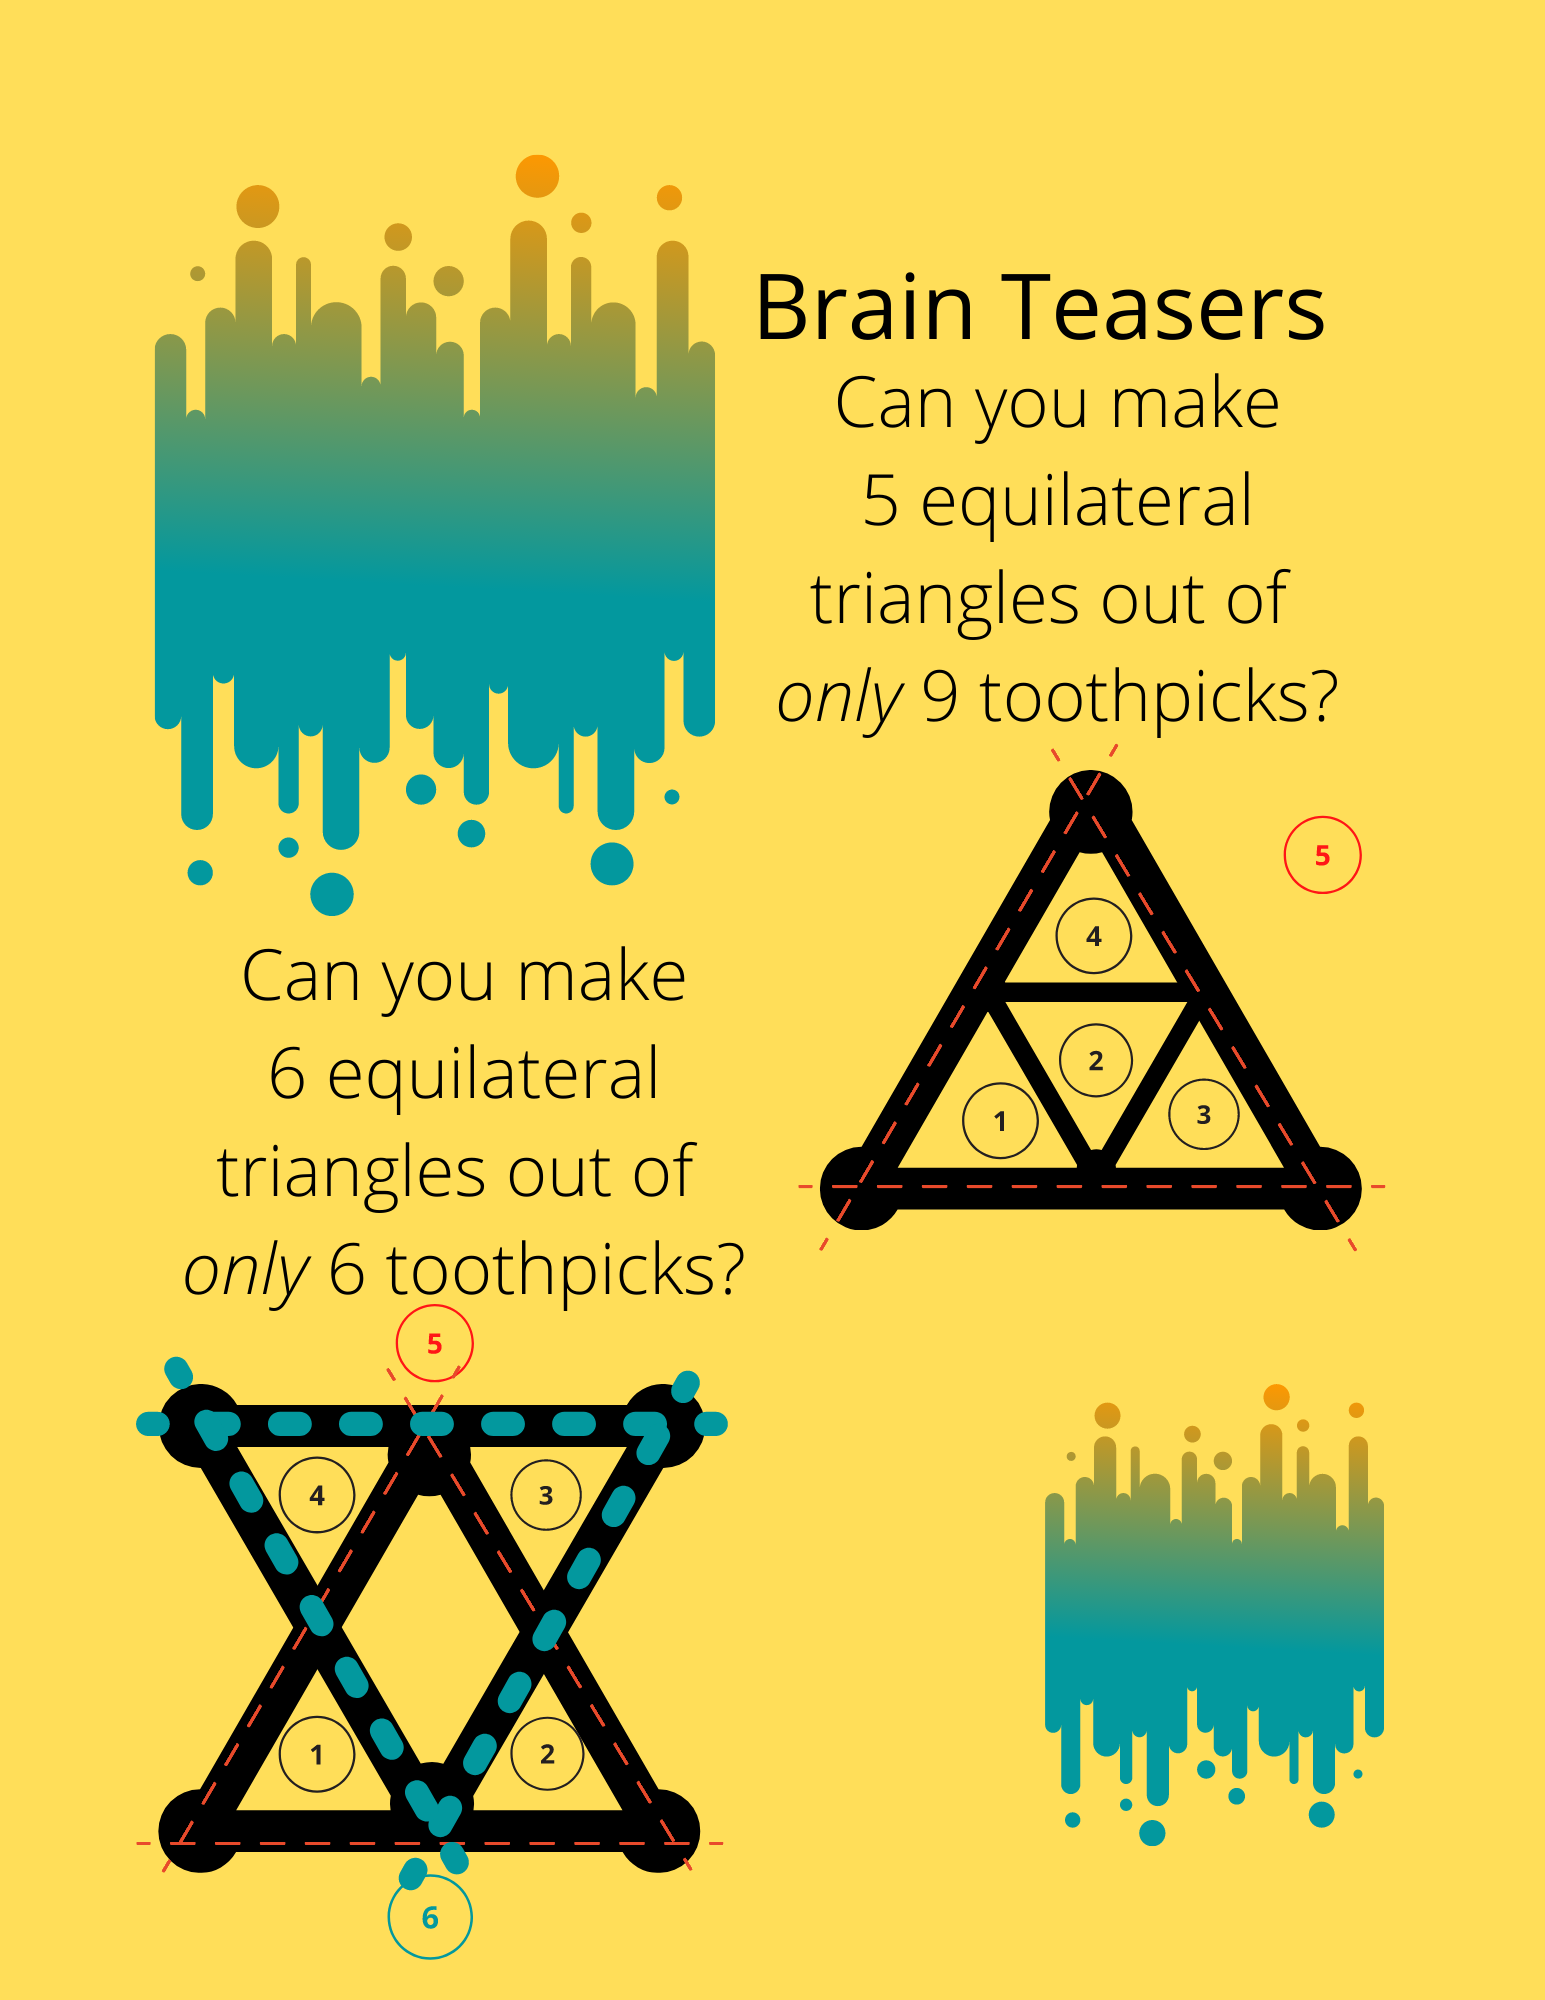 Solutions to Toothpick Triangle Brain Teasers